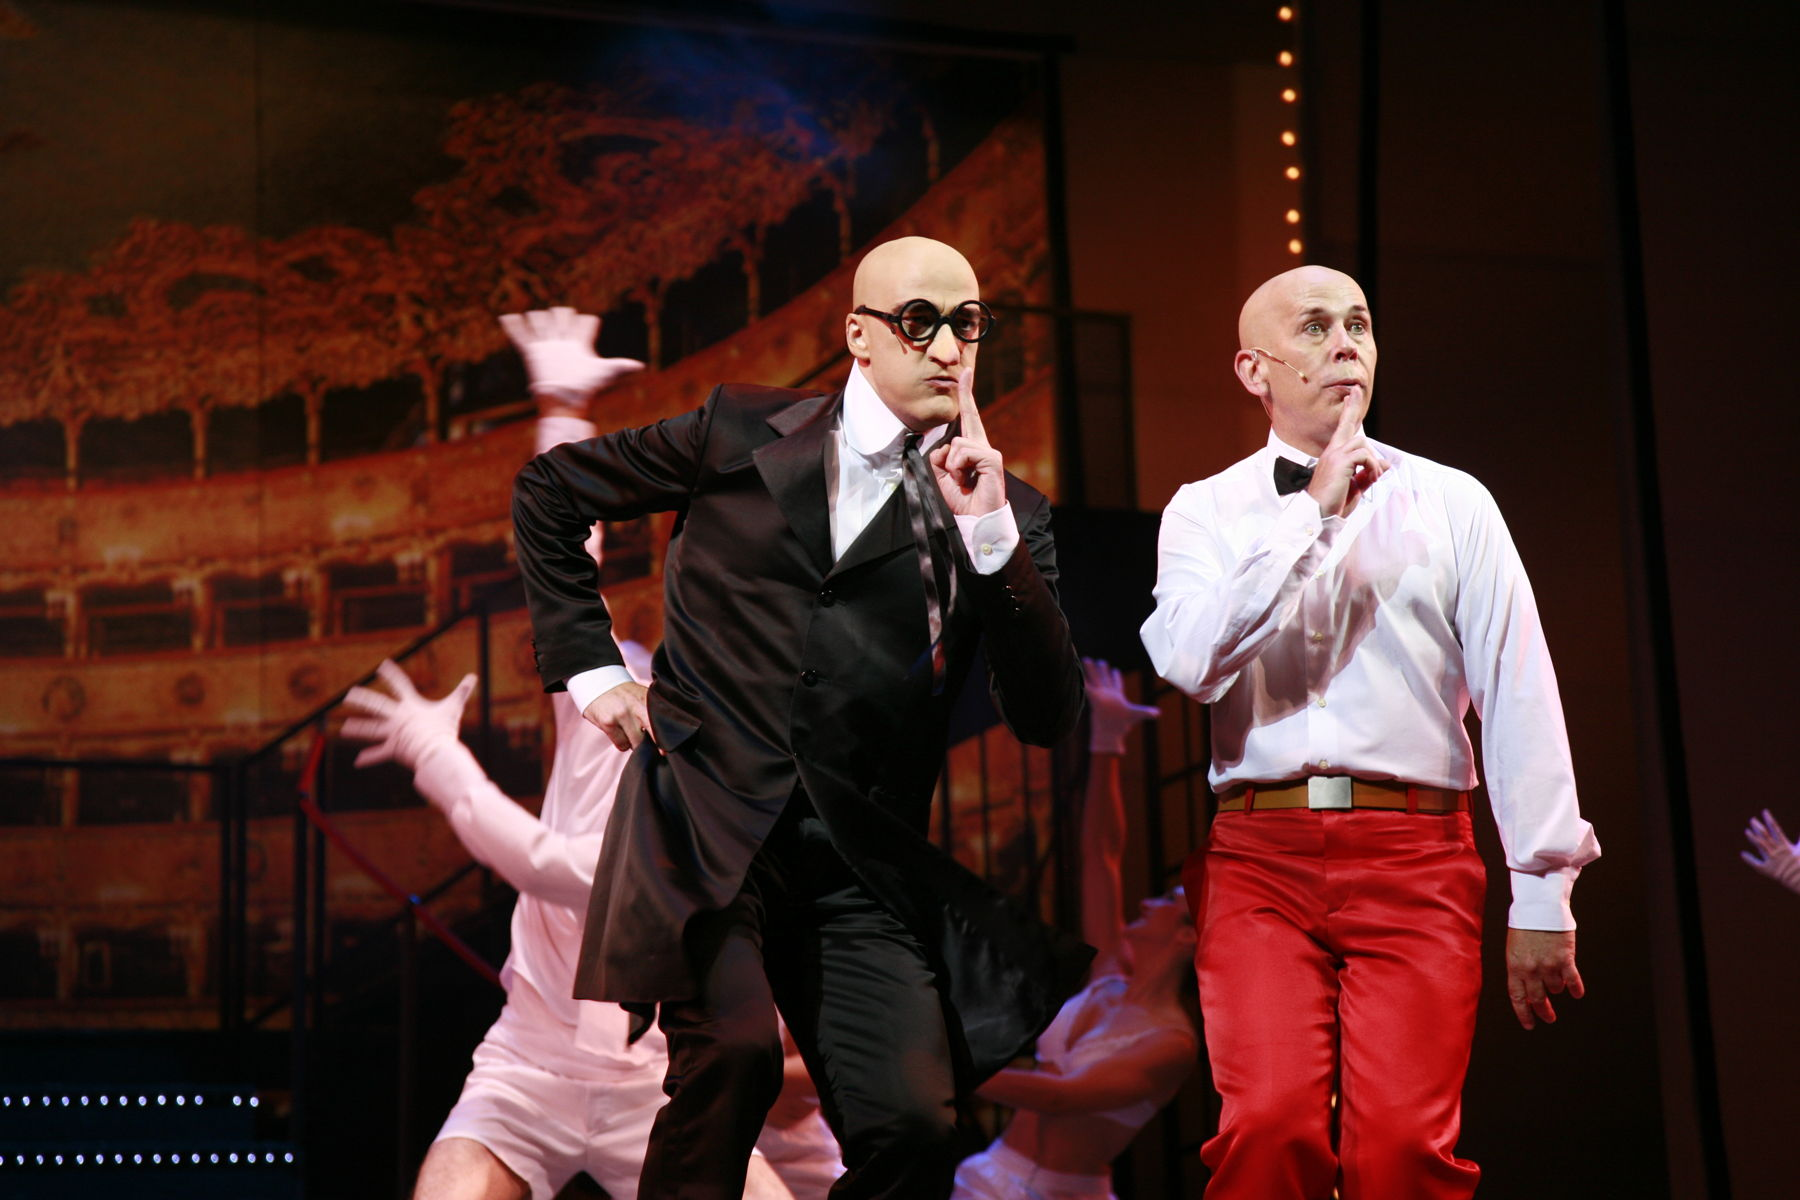 """The Miusical"" nominated for the Gran Vía Awards 2009"